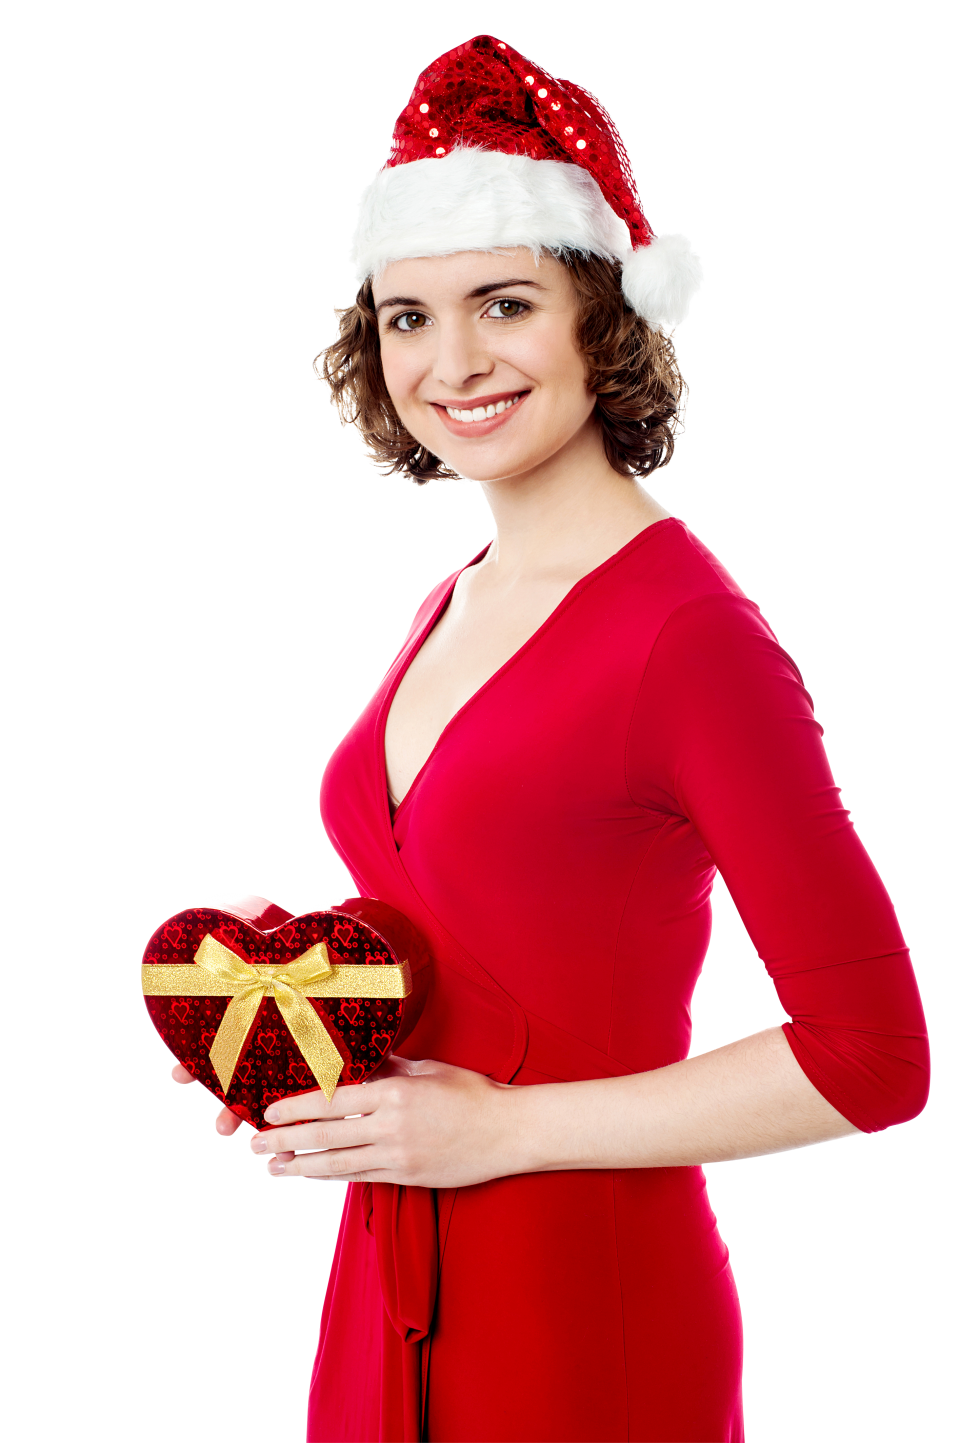 Santa Claus Female Holding Gift  PNG Image